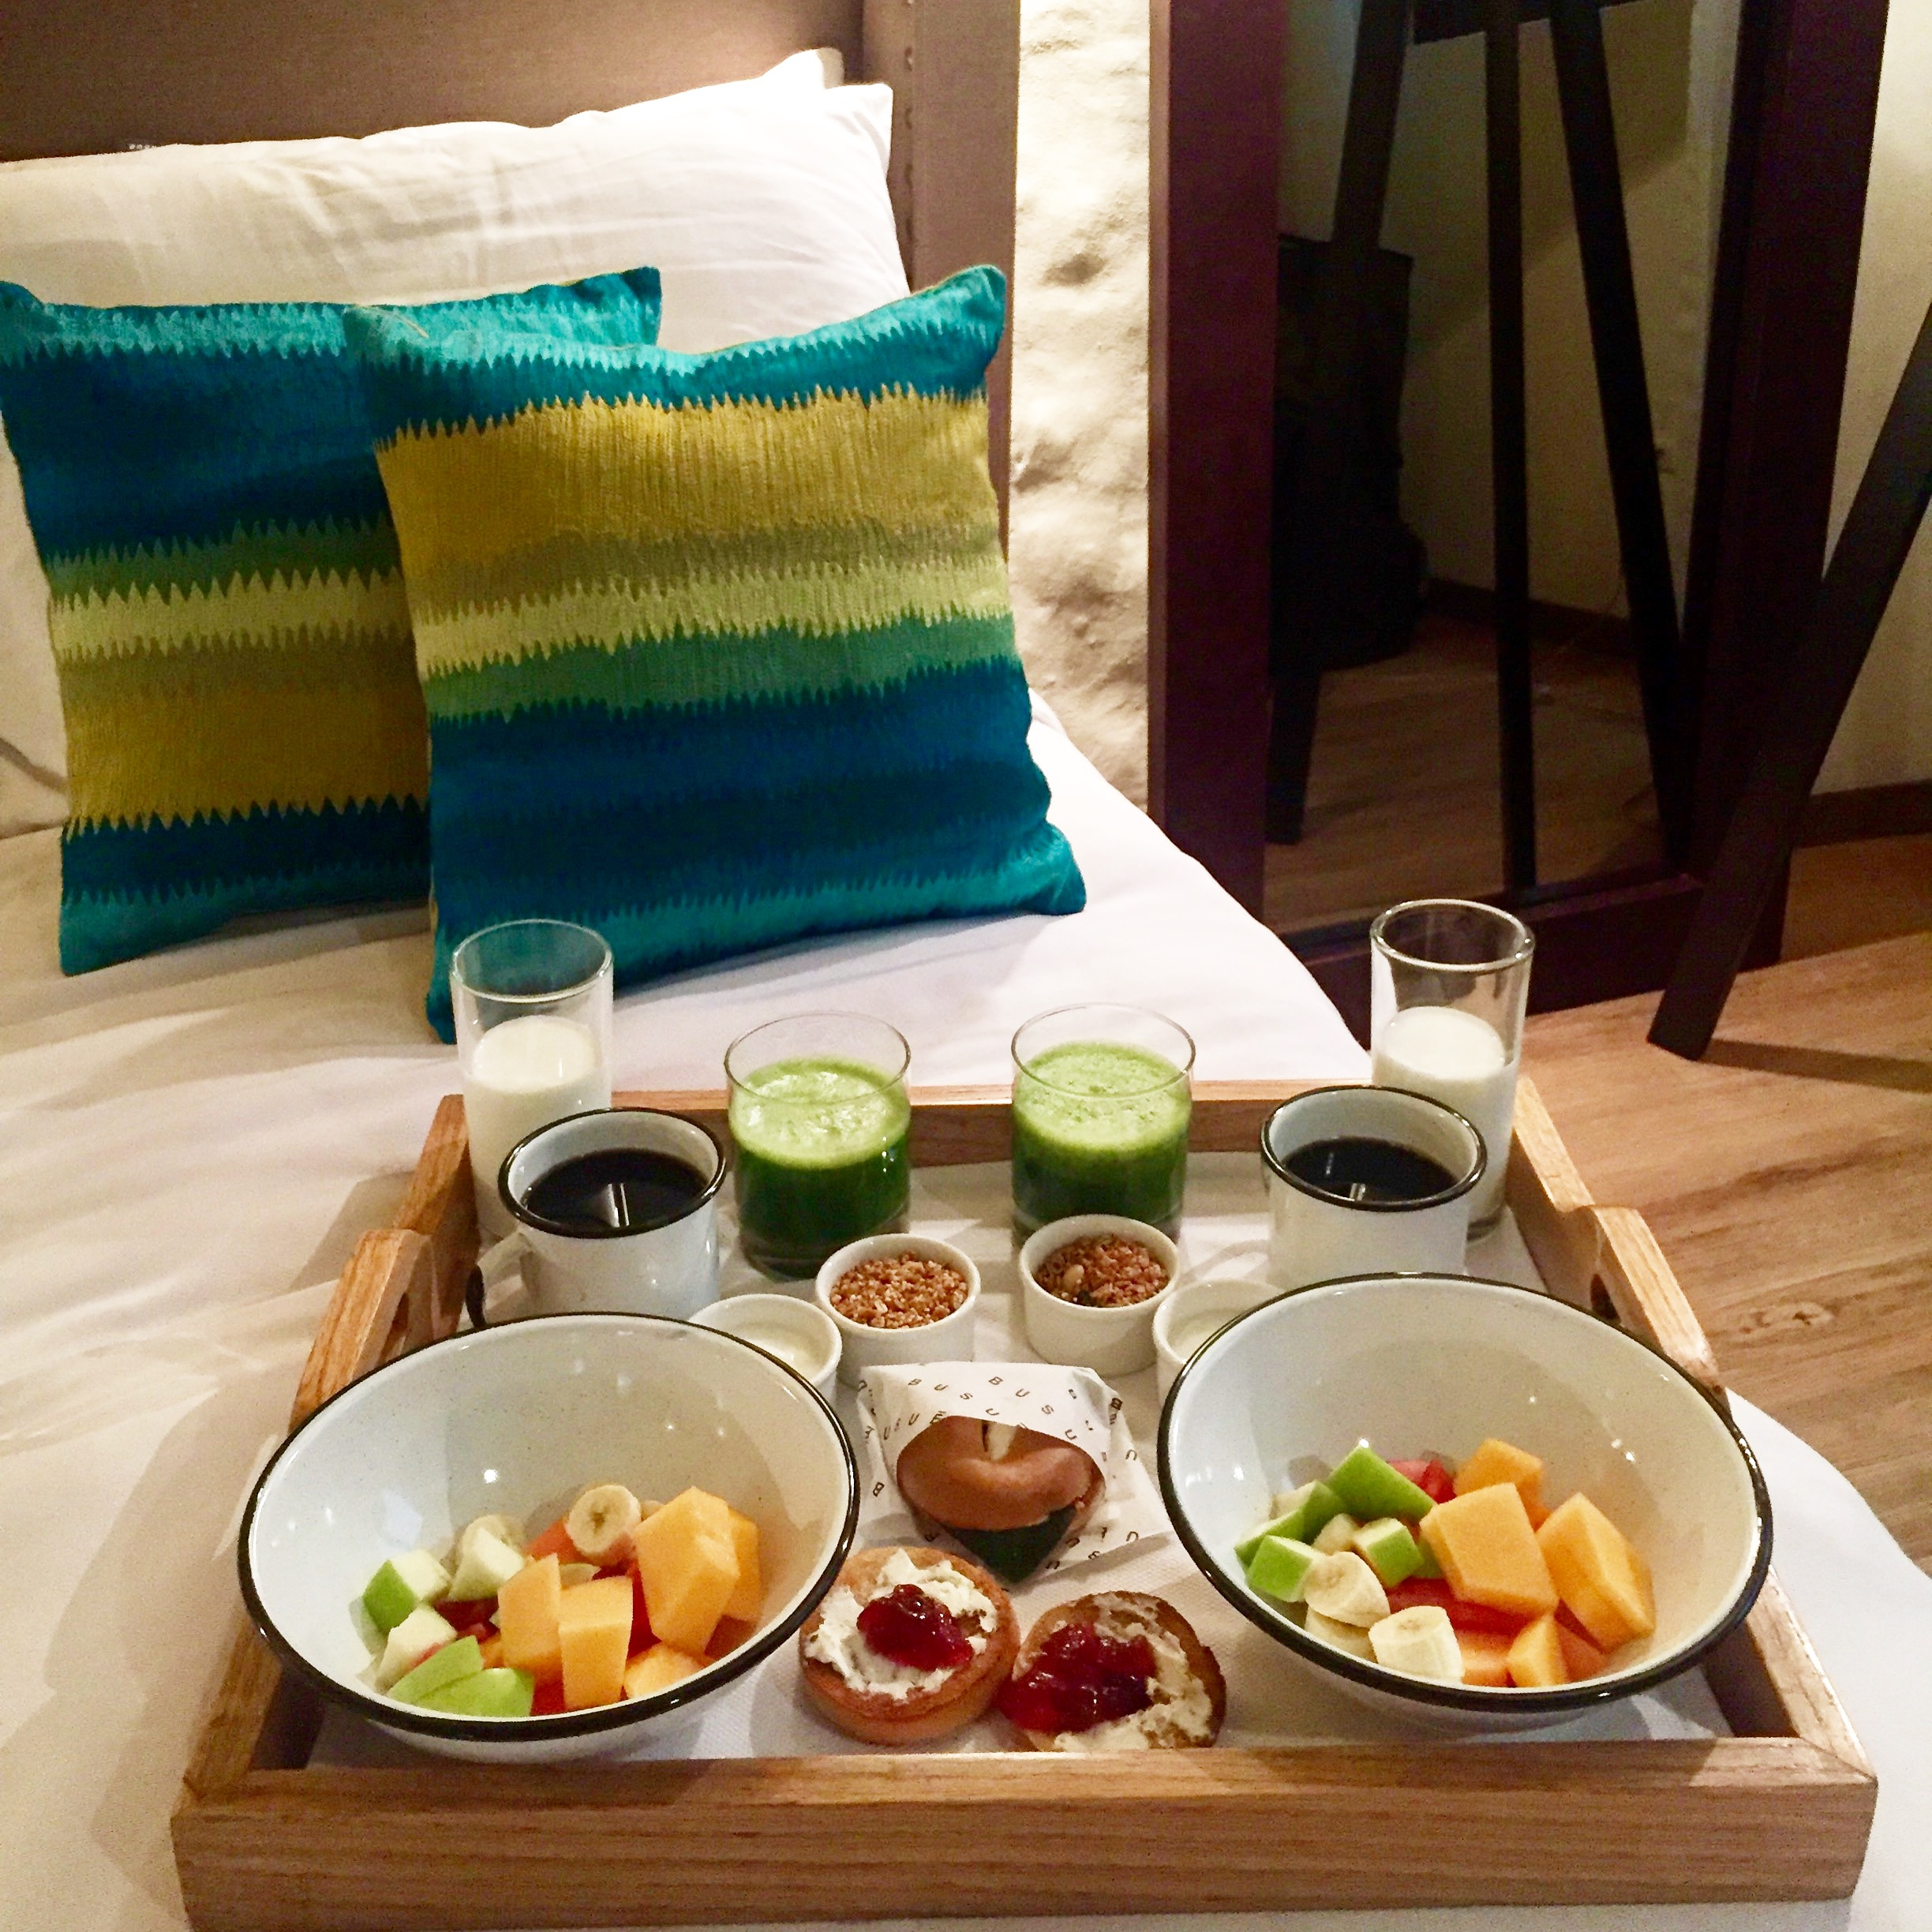 Breakfast in Bed at Busue Hotel in Mexico City | Best Places to Stay in Mexico City